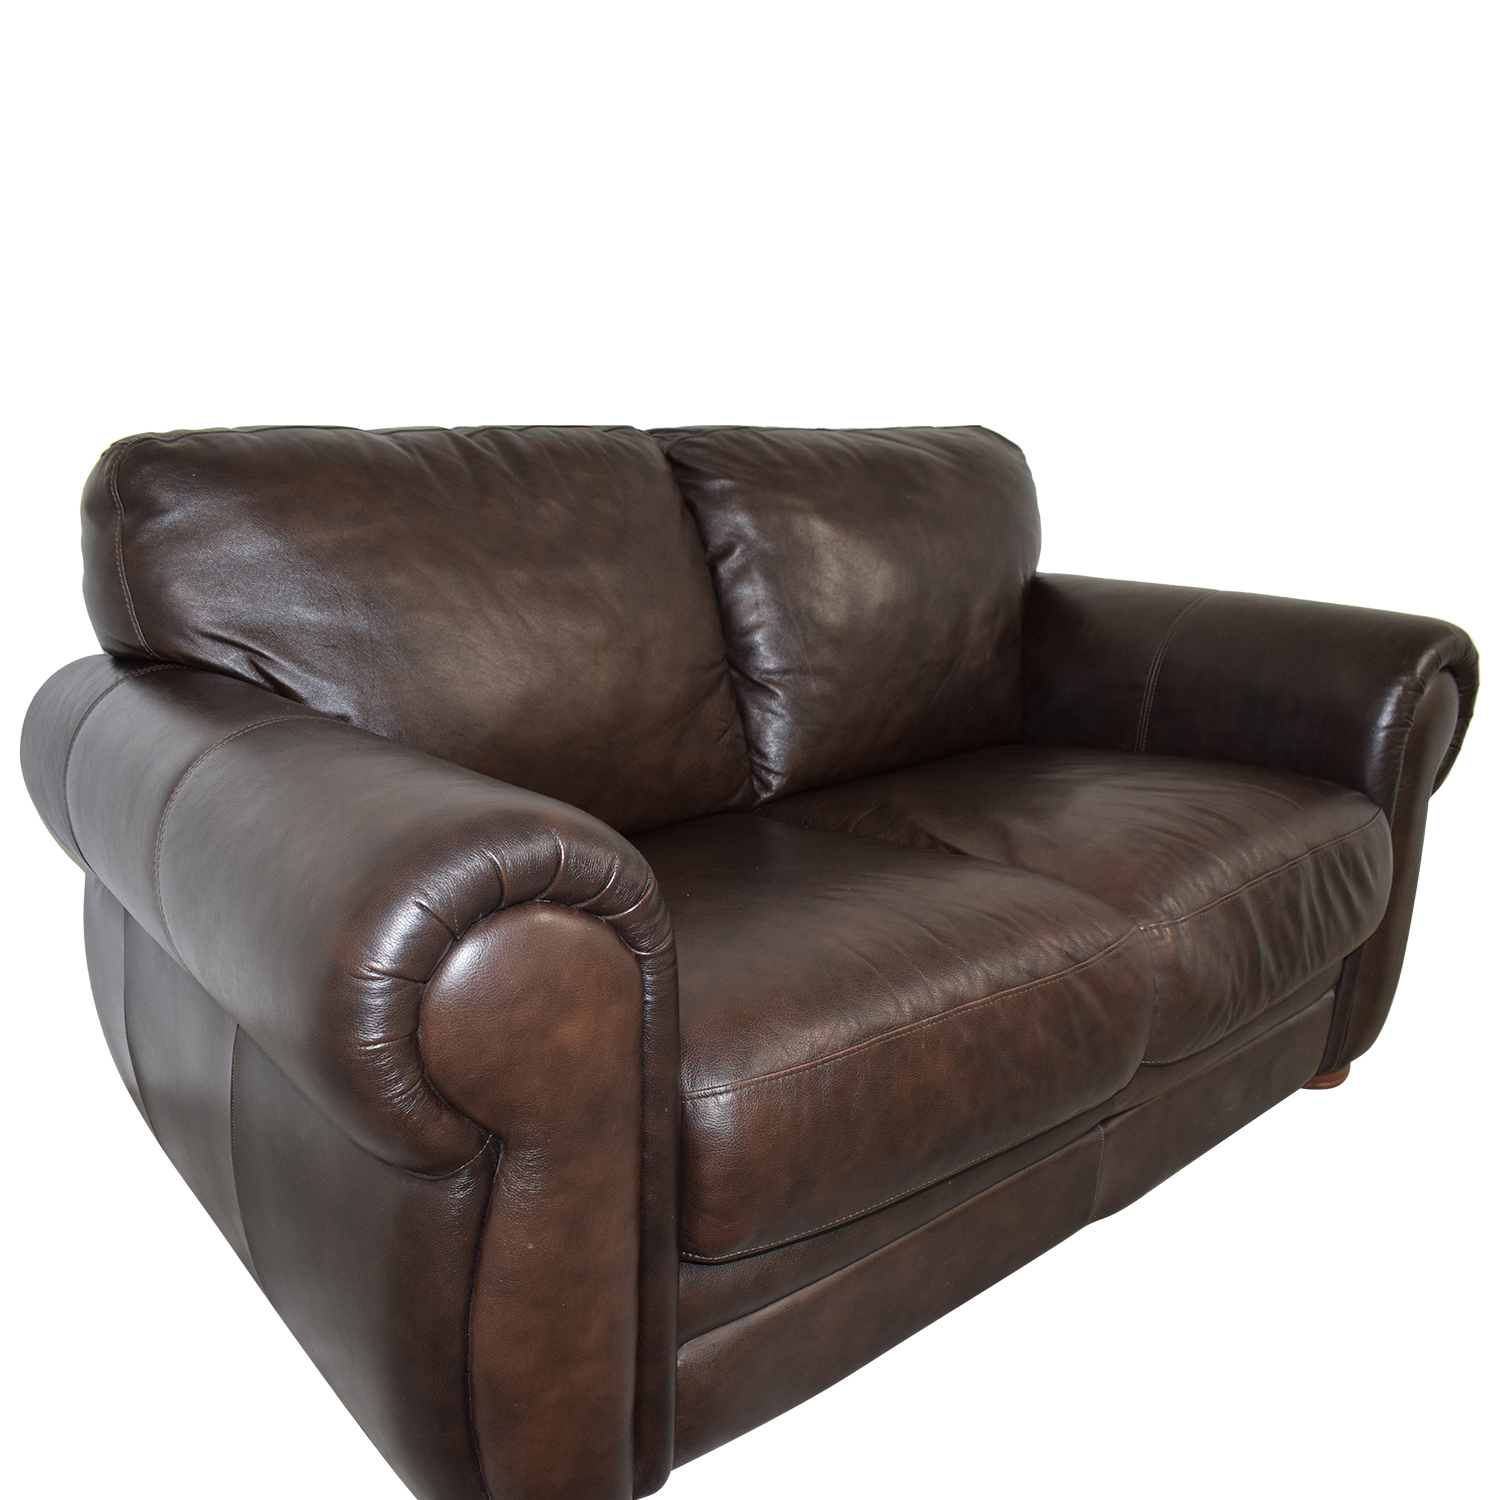 Second Hand Leather Sofas Gosport: Raymour & Flanigan Raymour & Flanigan Brown